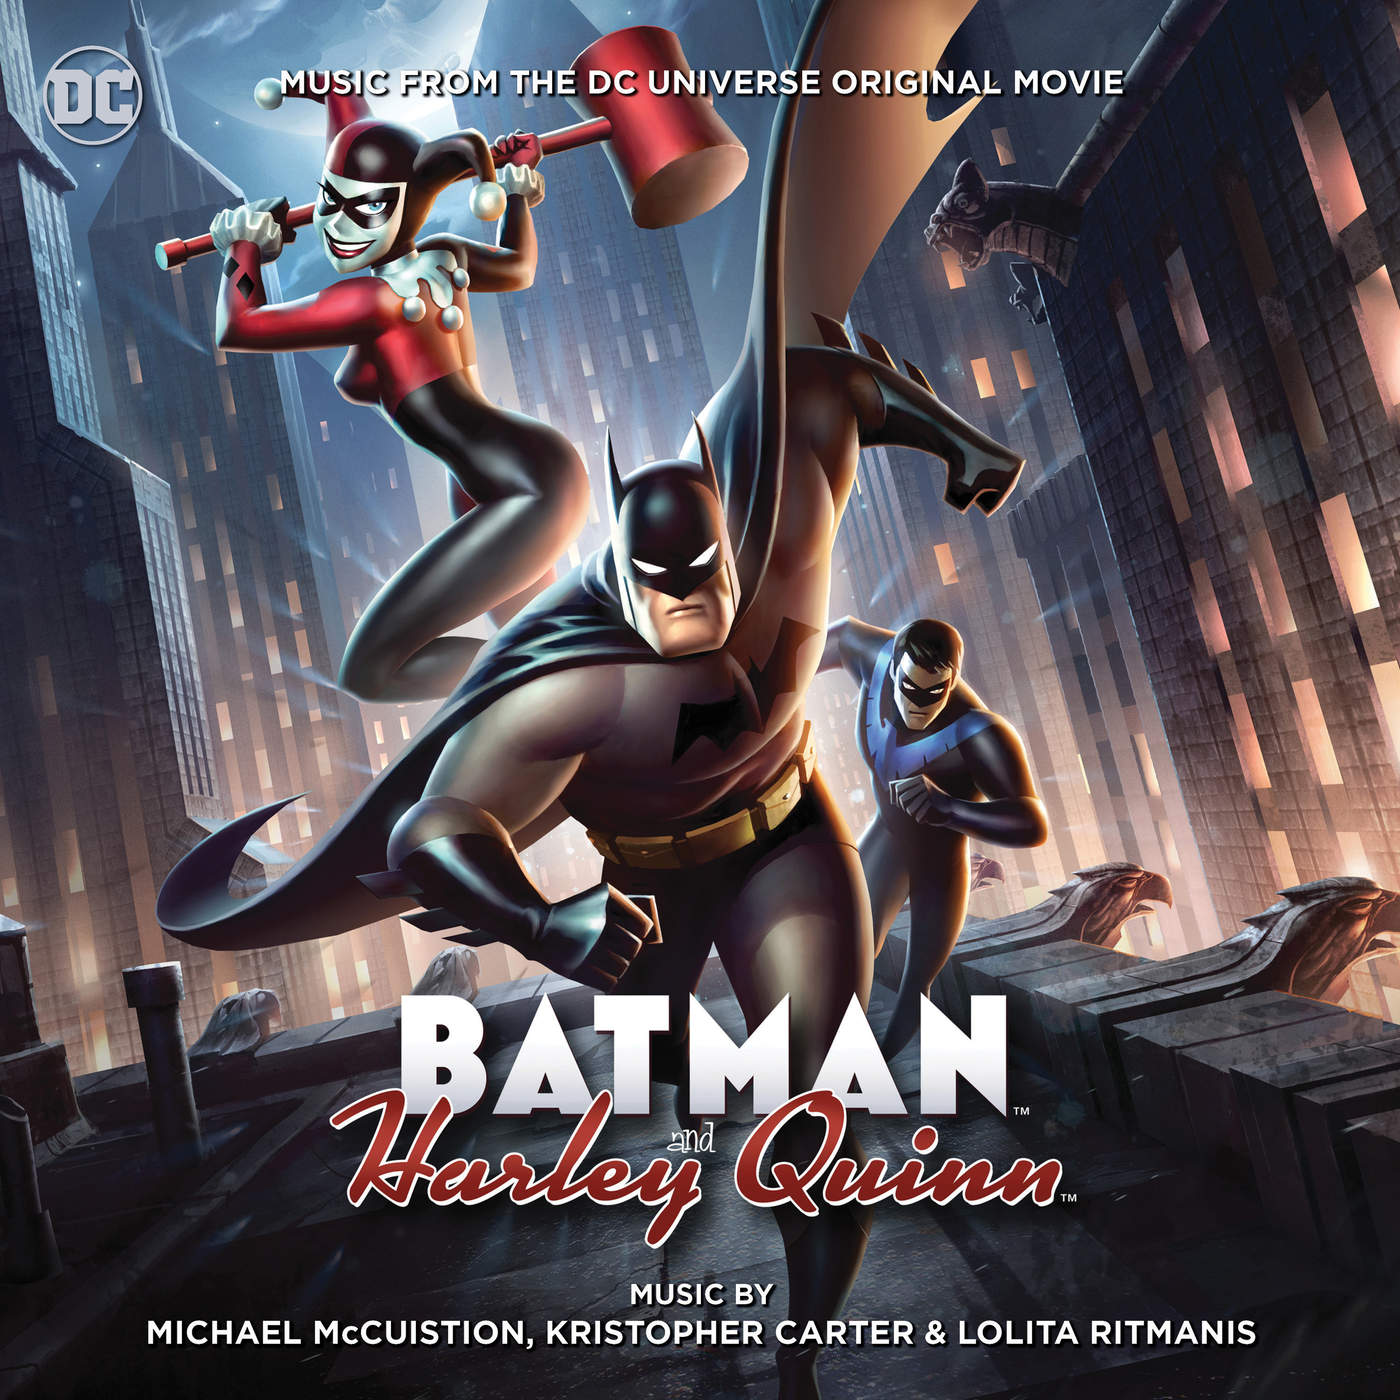 Michael McCuistion - Batman and Harley Quinn: Music From the DC Universe Original Movie